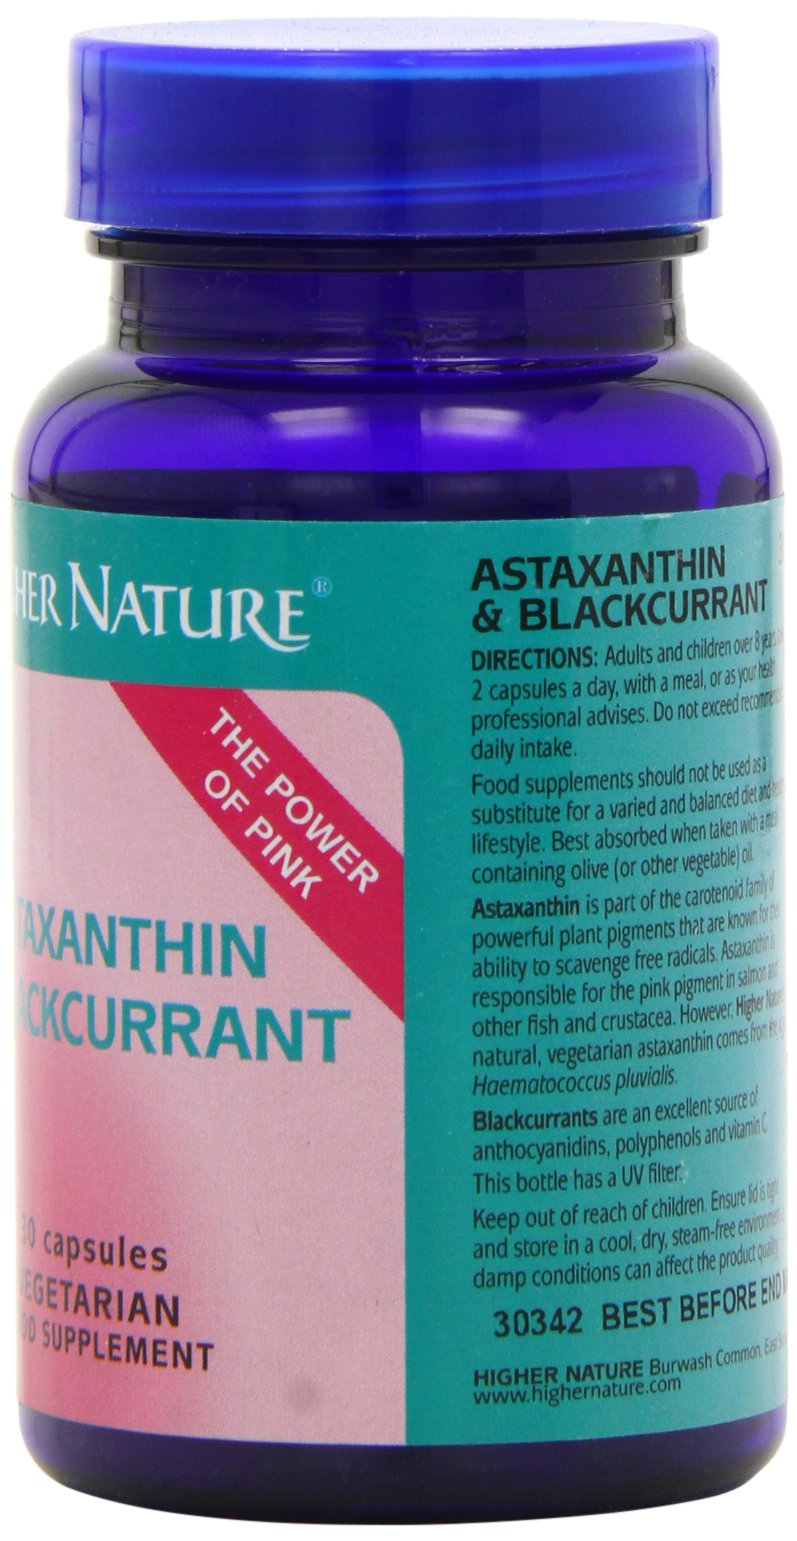 71G7t0Q3GxL - Higher Nature Astaxanthin & Blackcurrant - 30 Capsules